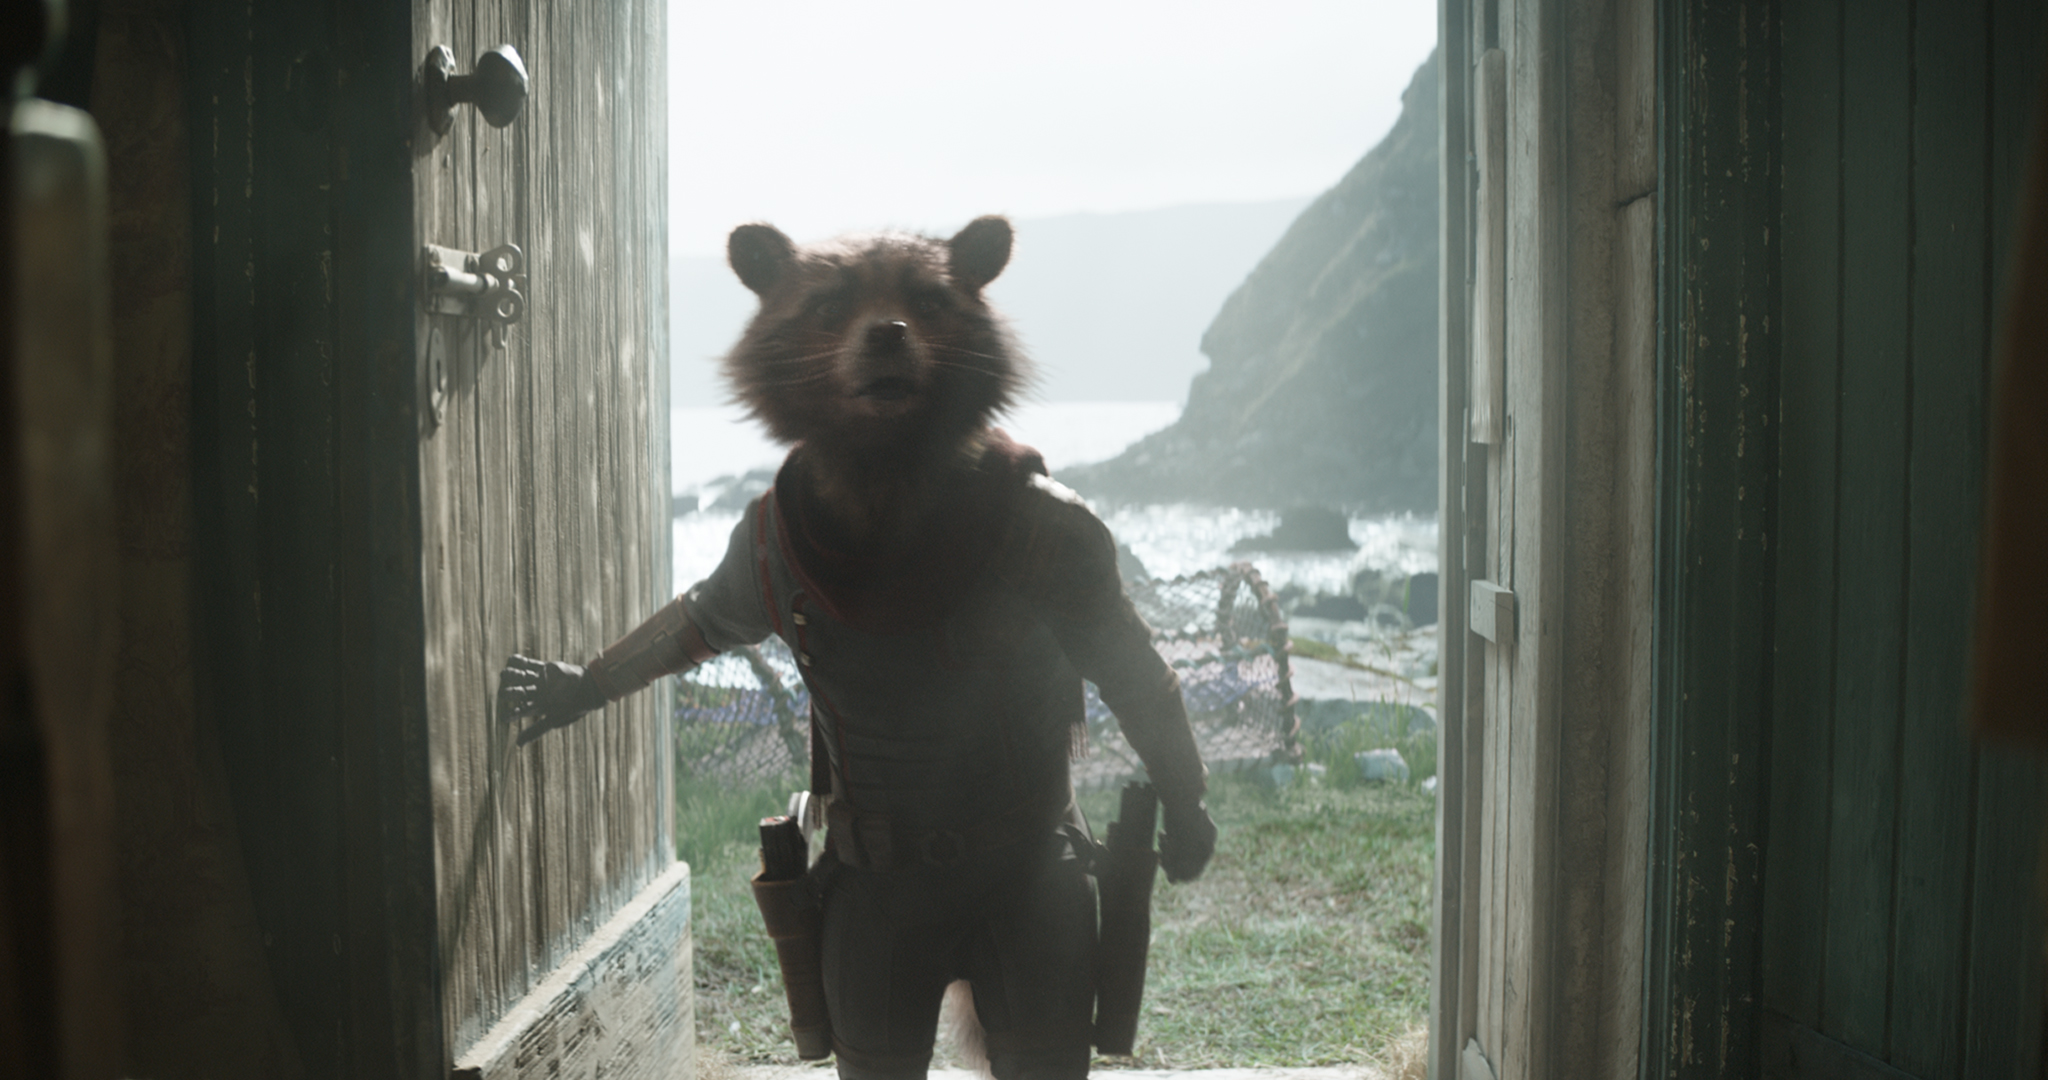 Still from 'Avengers: Endgame' featuring Rocket (voiced by Bradley Cooper).